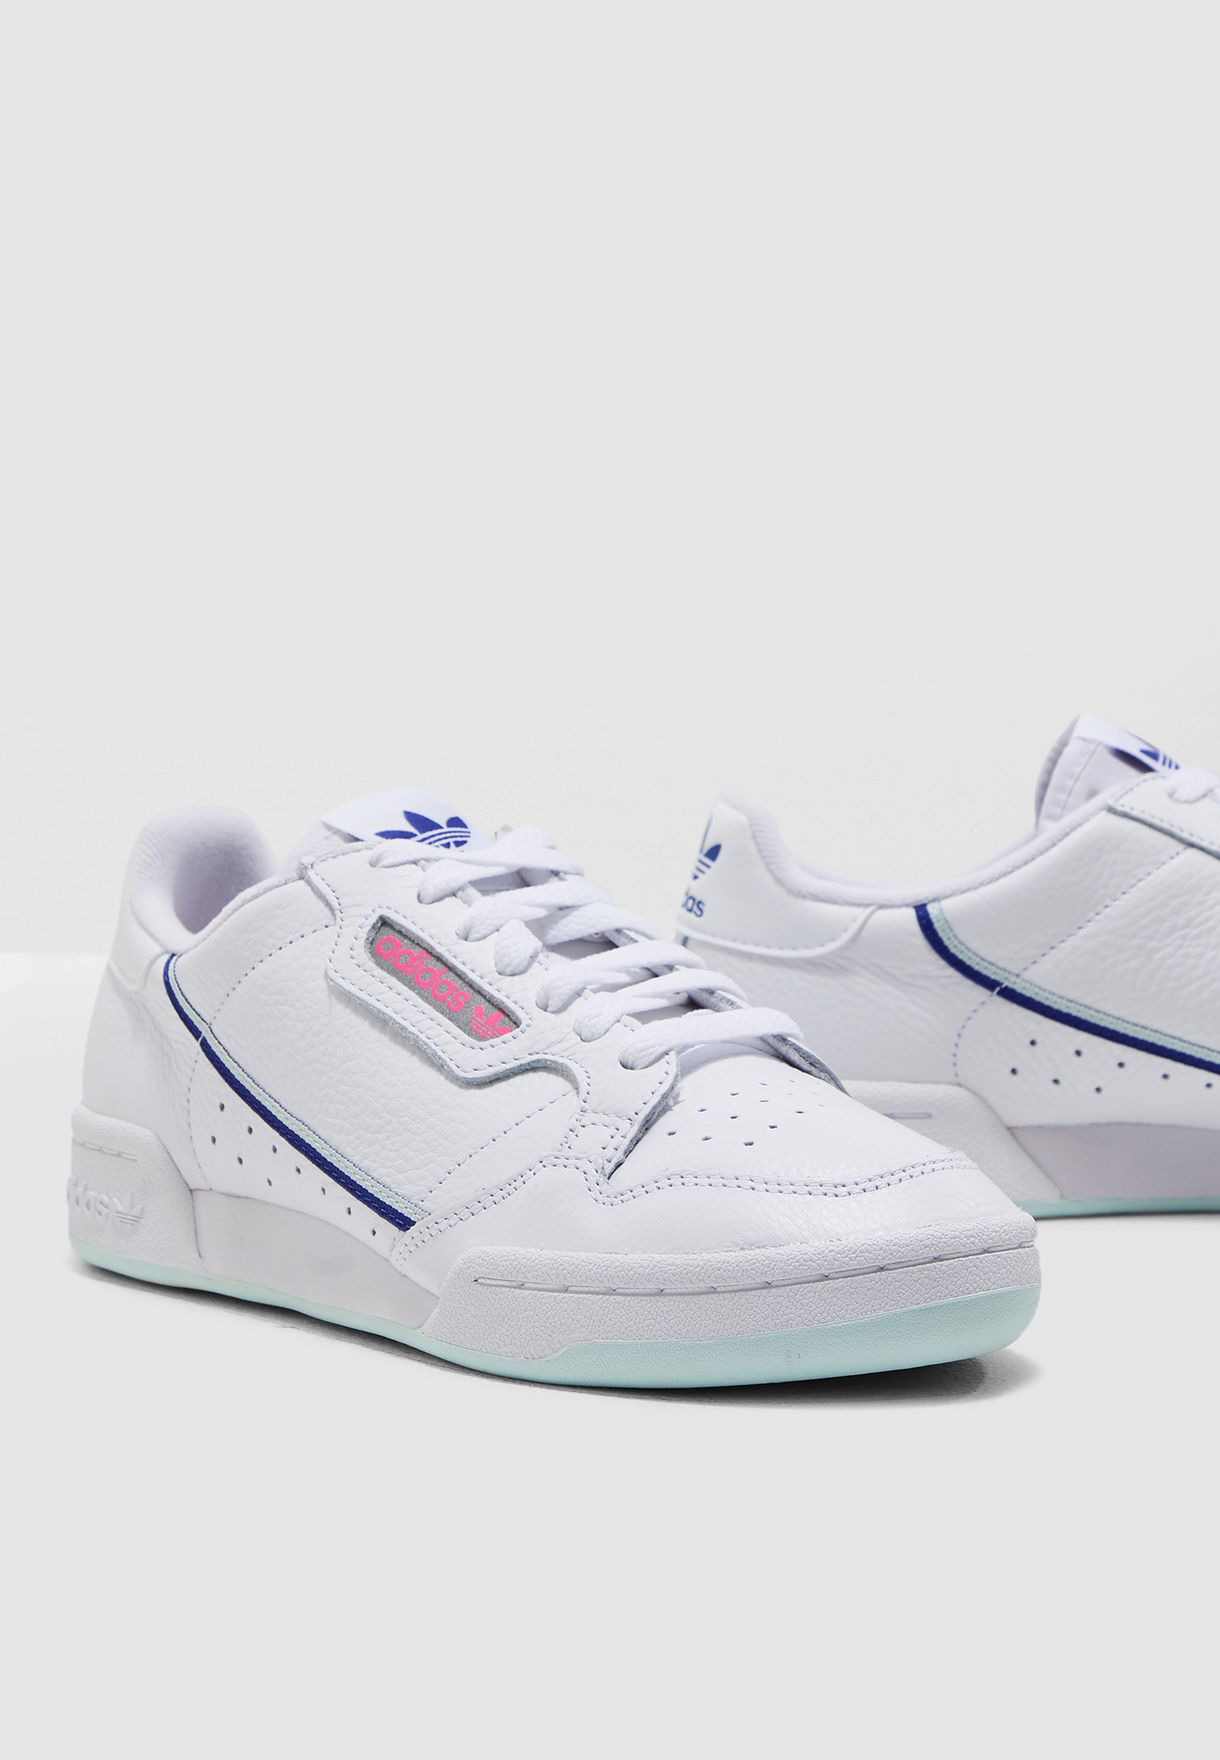 dd207f953 Shop adidas Originals white Continental 80 G27725 for Women in ...